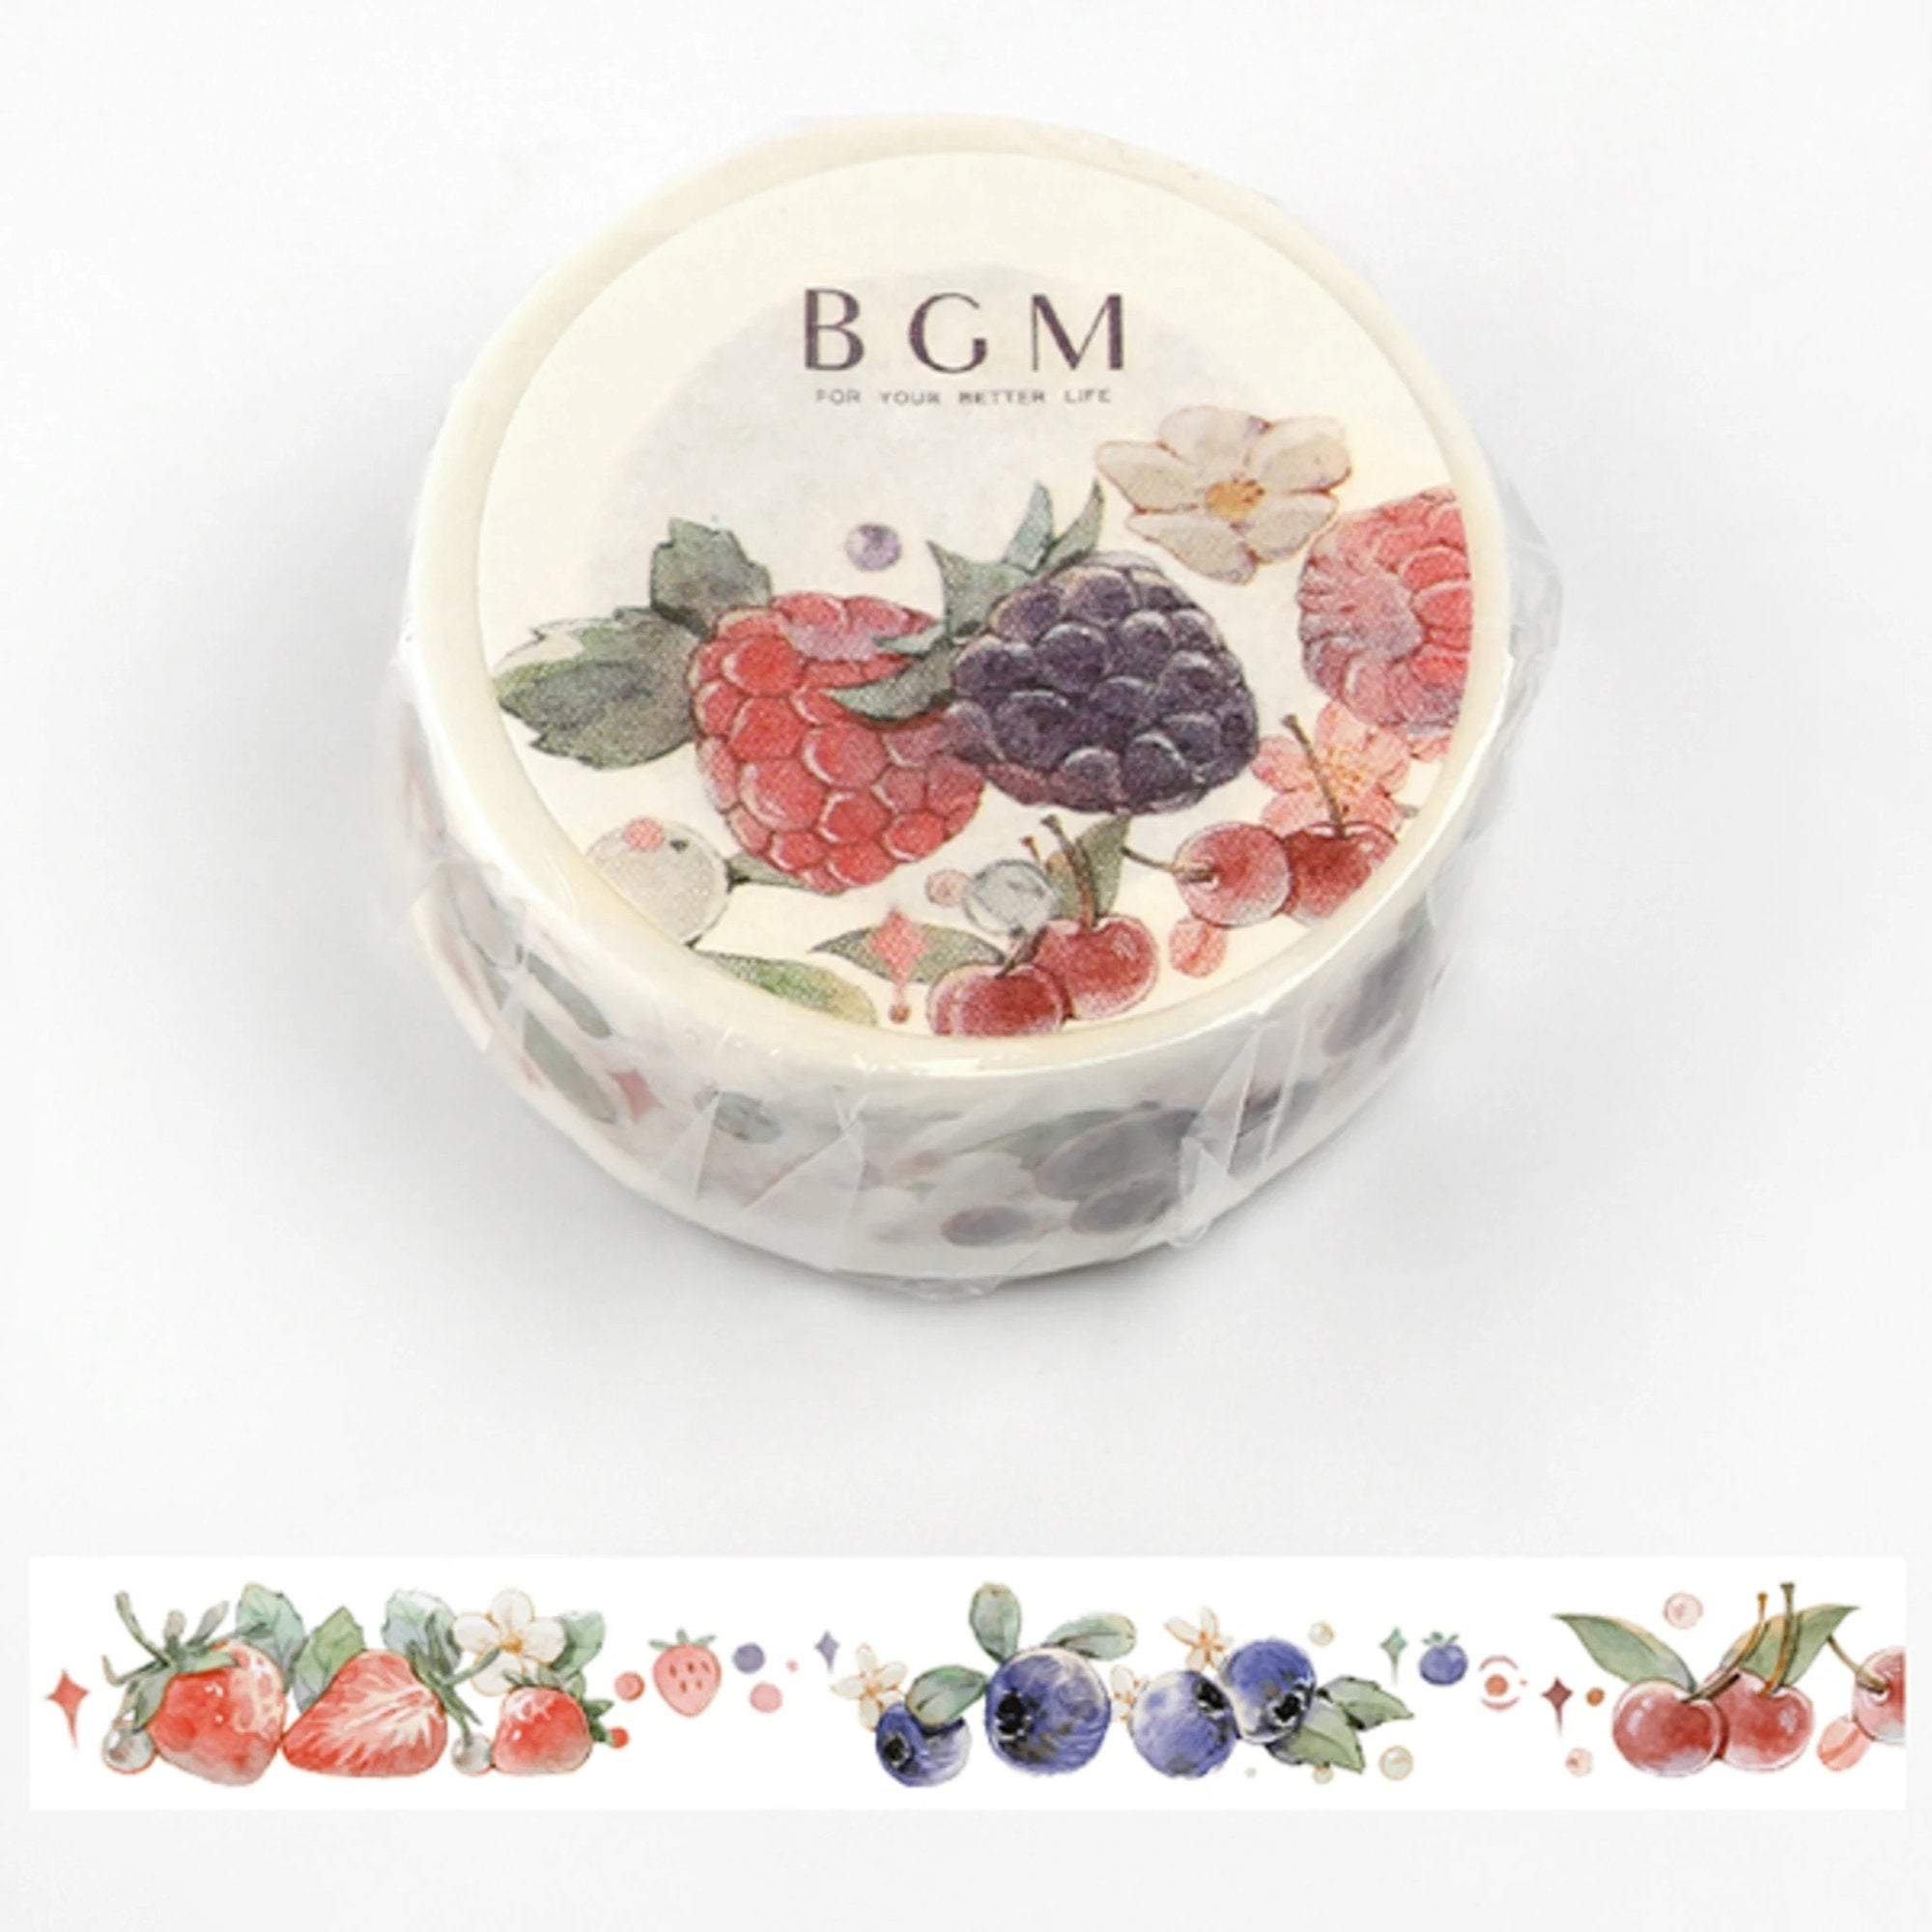 BGM Life Berries Strawberry Raspberry Blackberry Washi Tape - The Stationery Life!